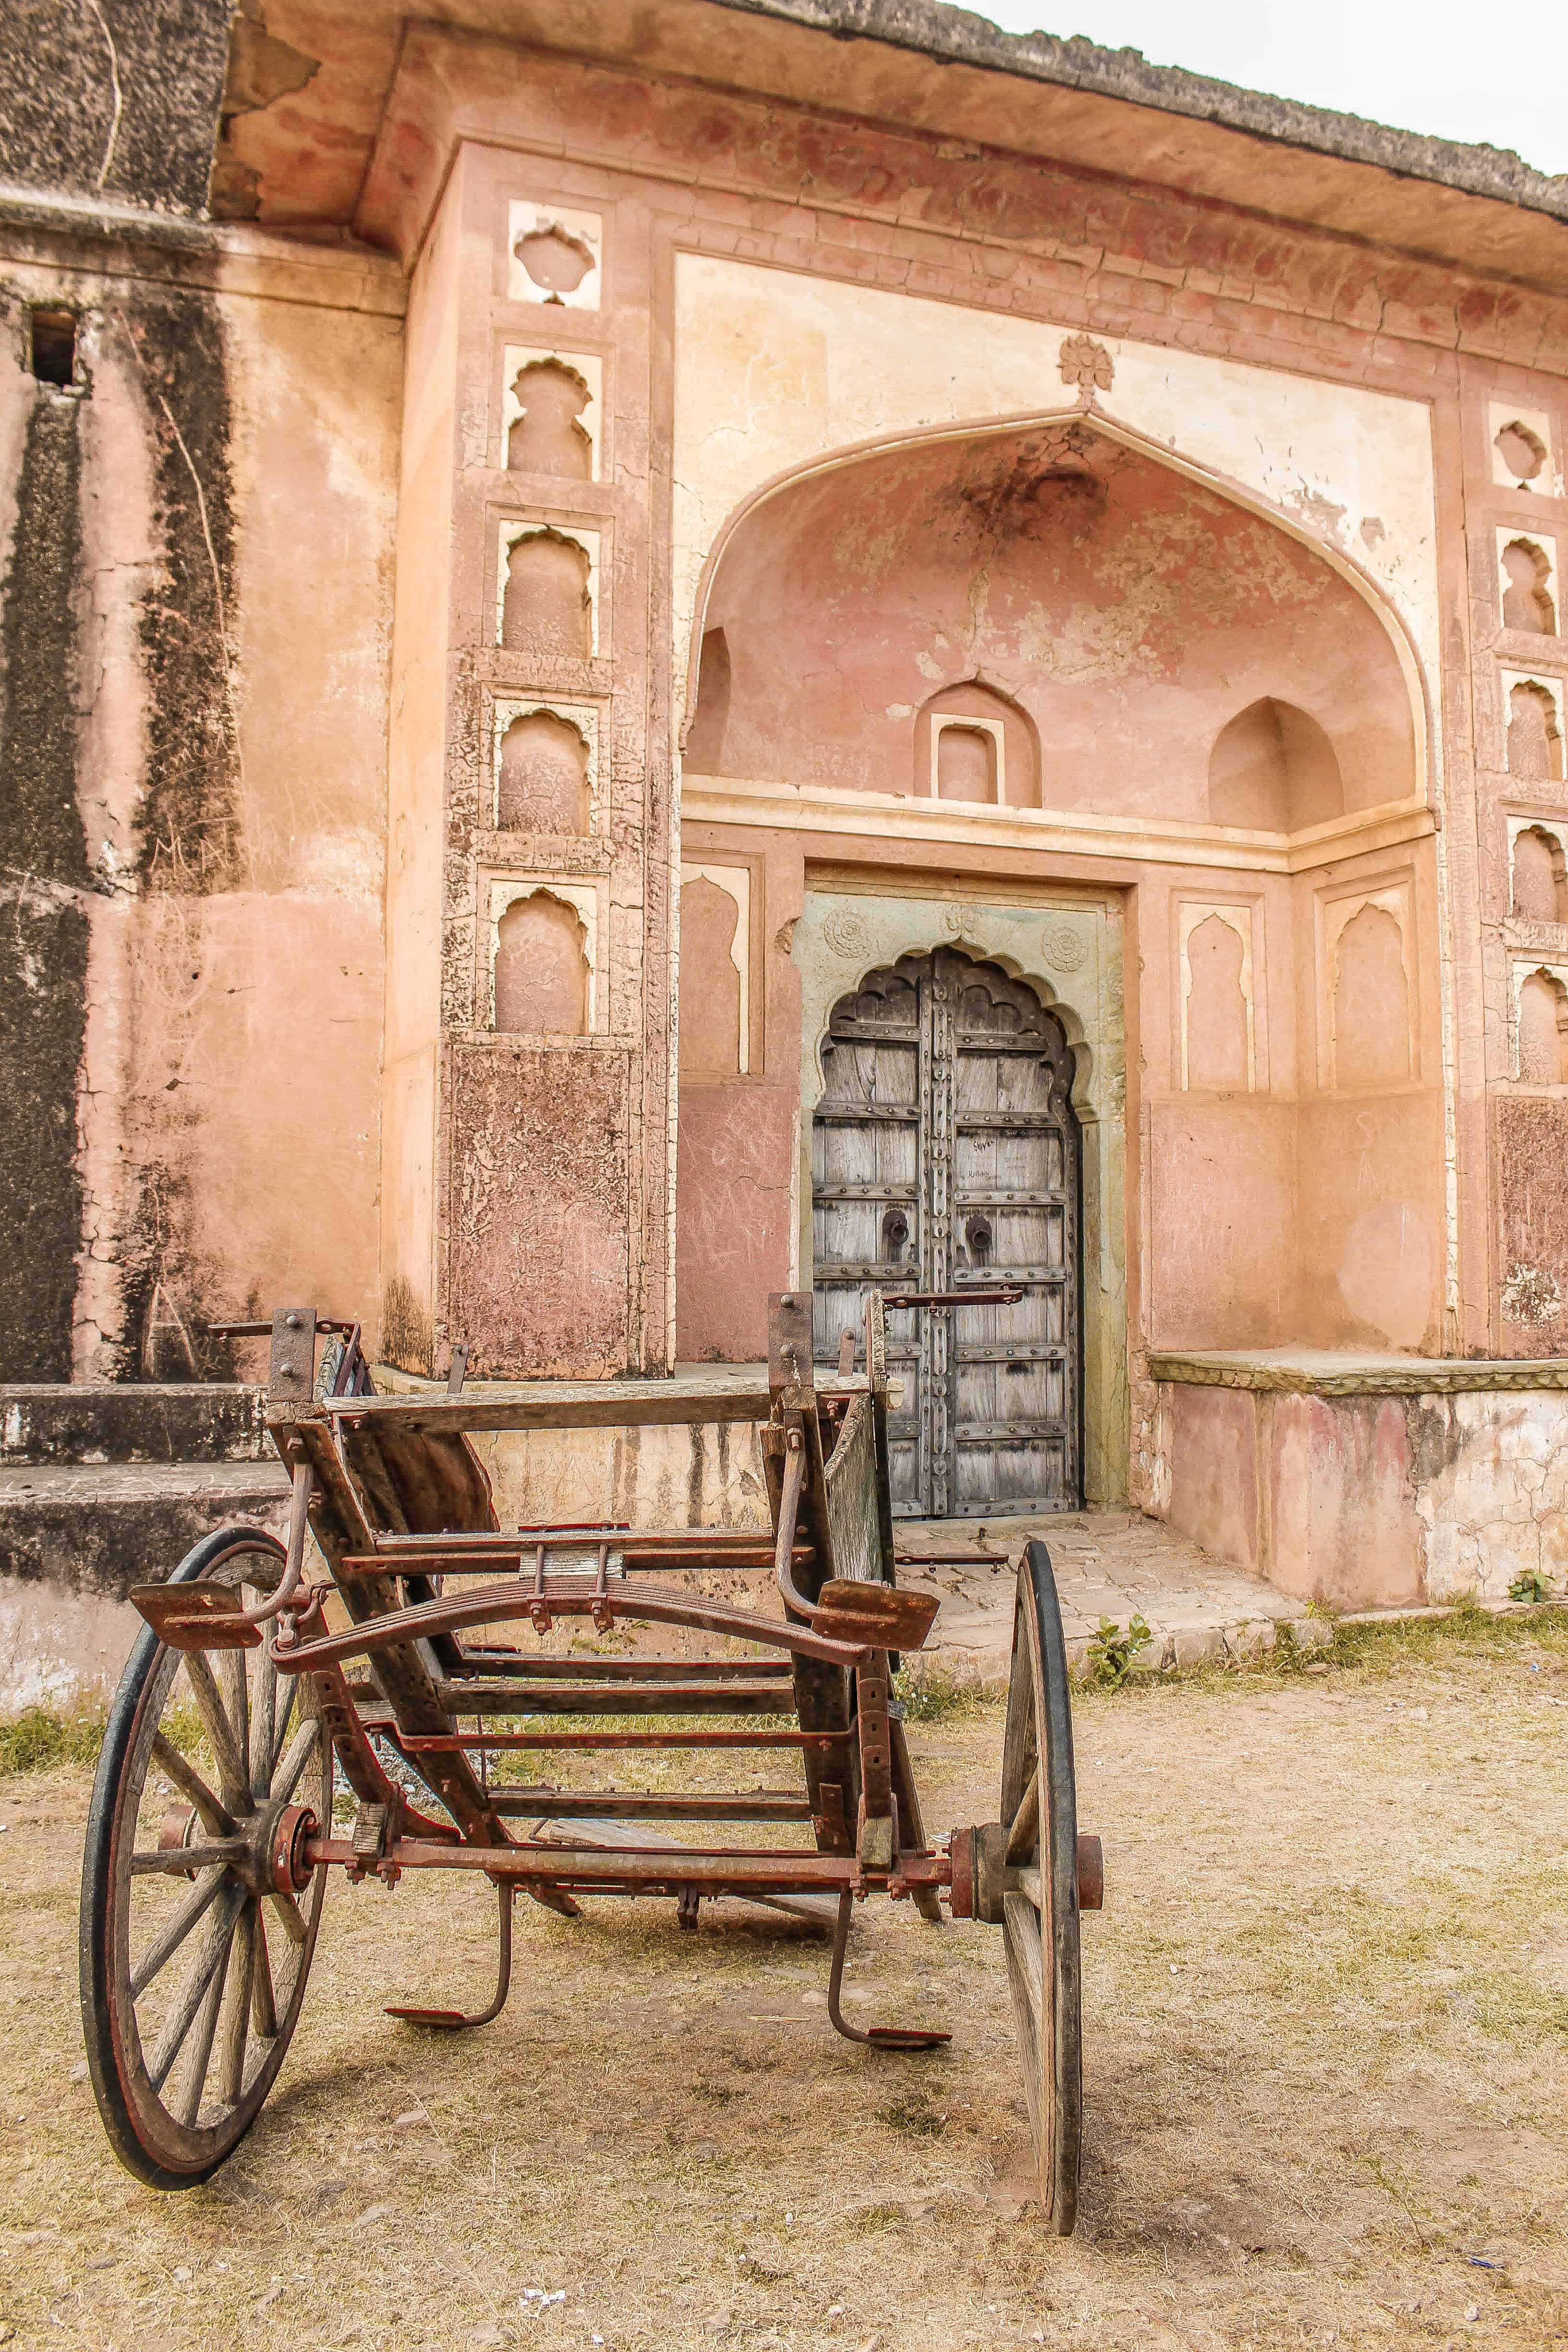 Jaigarh Fort- one of the best places to visit in Jaipur